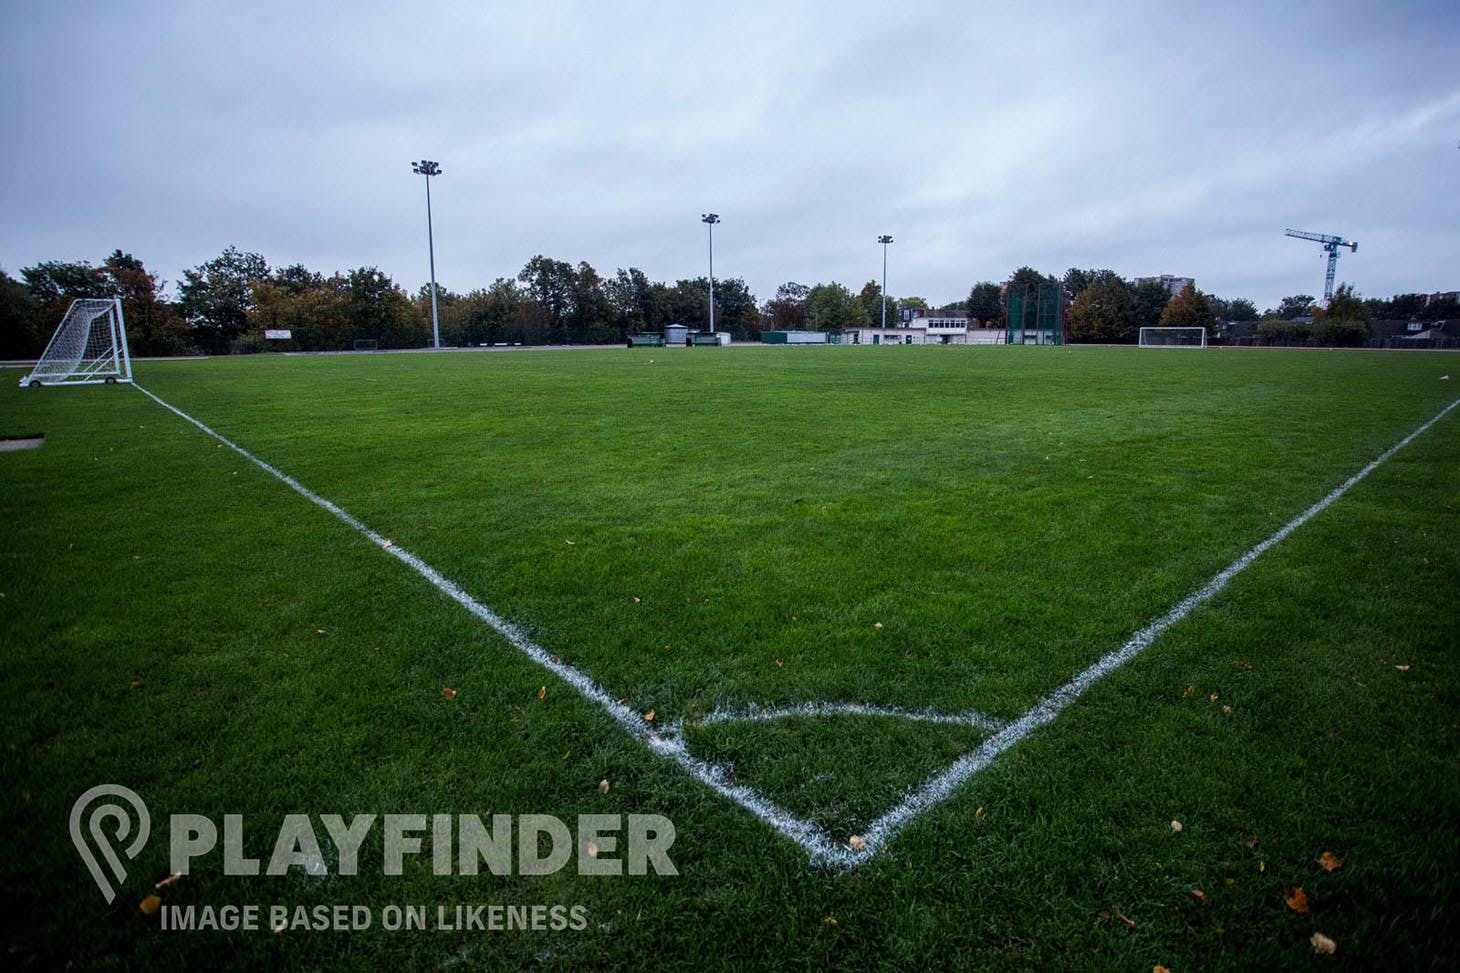 Broadhurst Park 11 a side | Grass football pitch